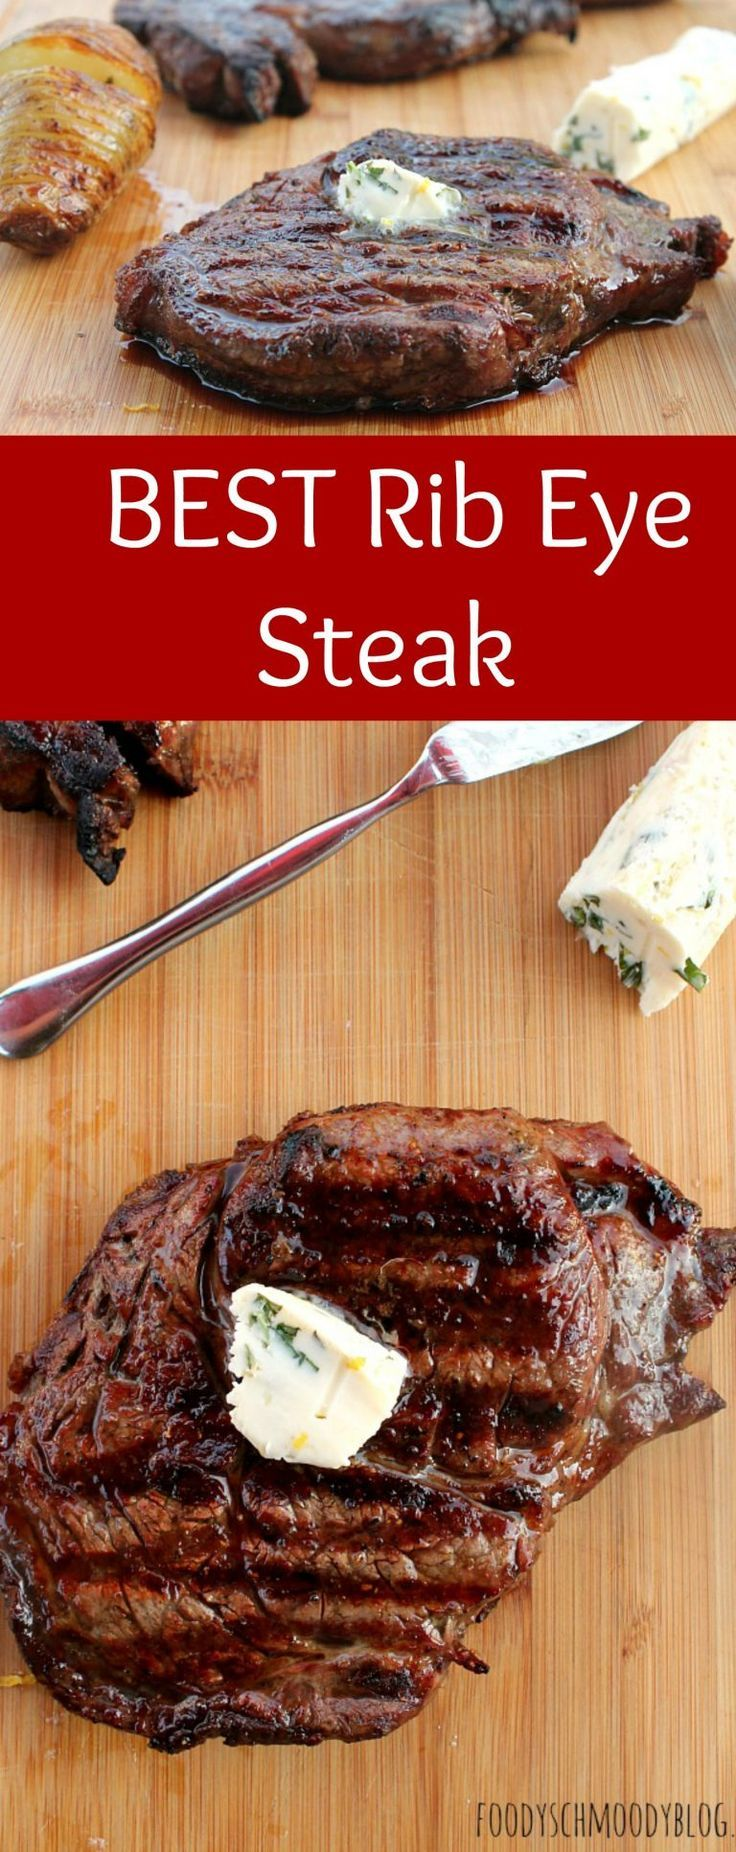 100+ Grilling Recipes on Pinterest | Grilling, Summer Grilling Recipes ...